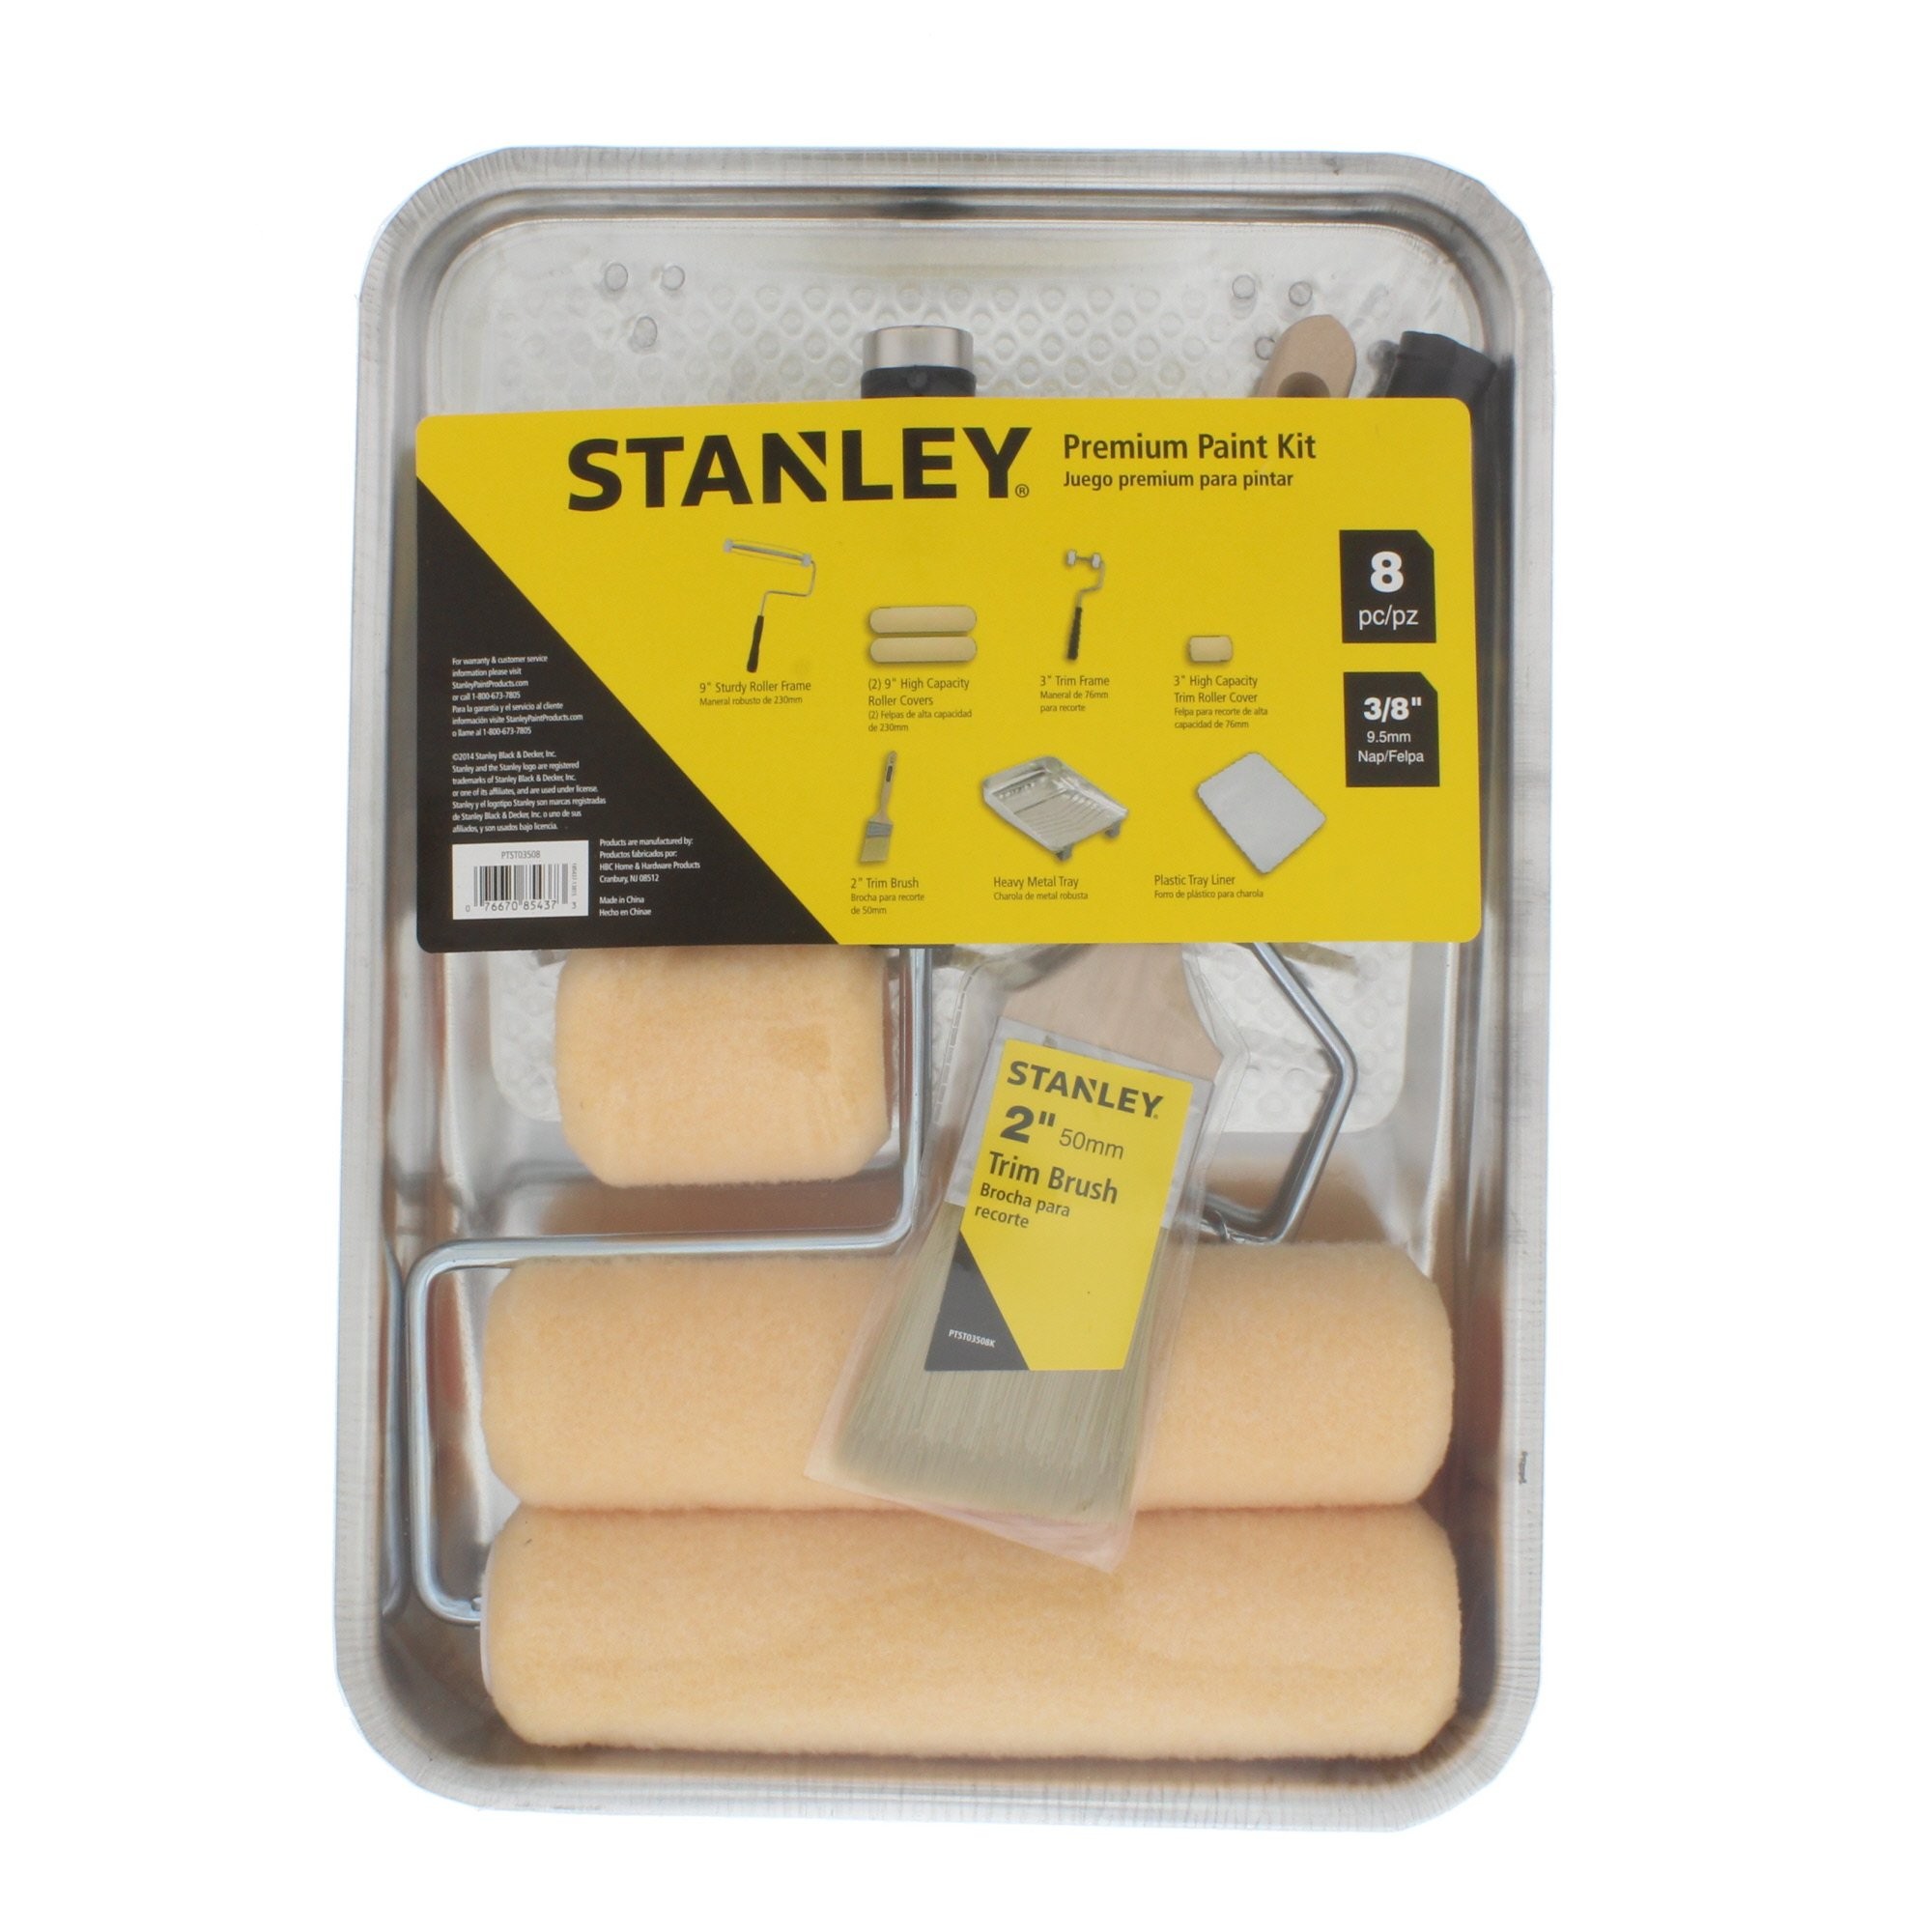 STANLEY Home Paint Kit Including Tray, Roller, Brush, and More - 8 Piece (PTST03508) by Stanley (Image #1)